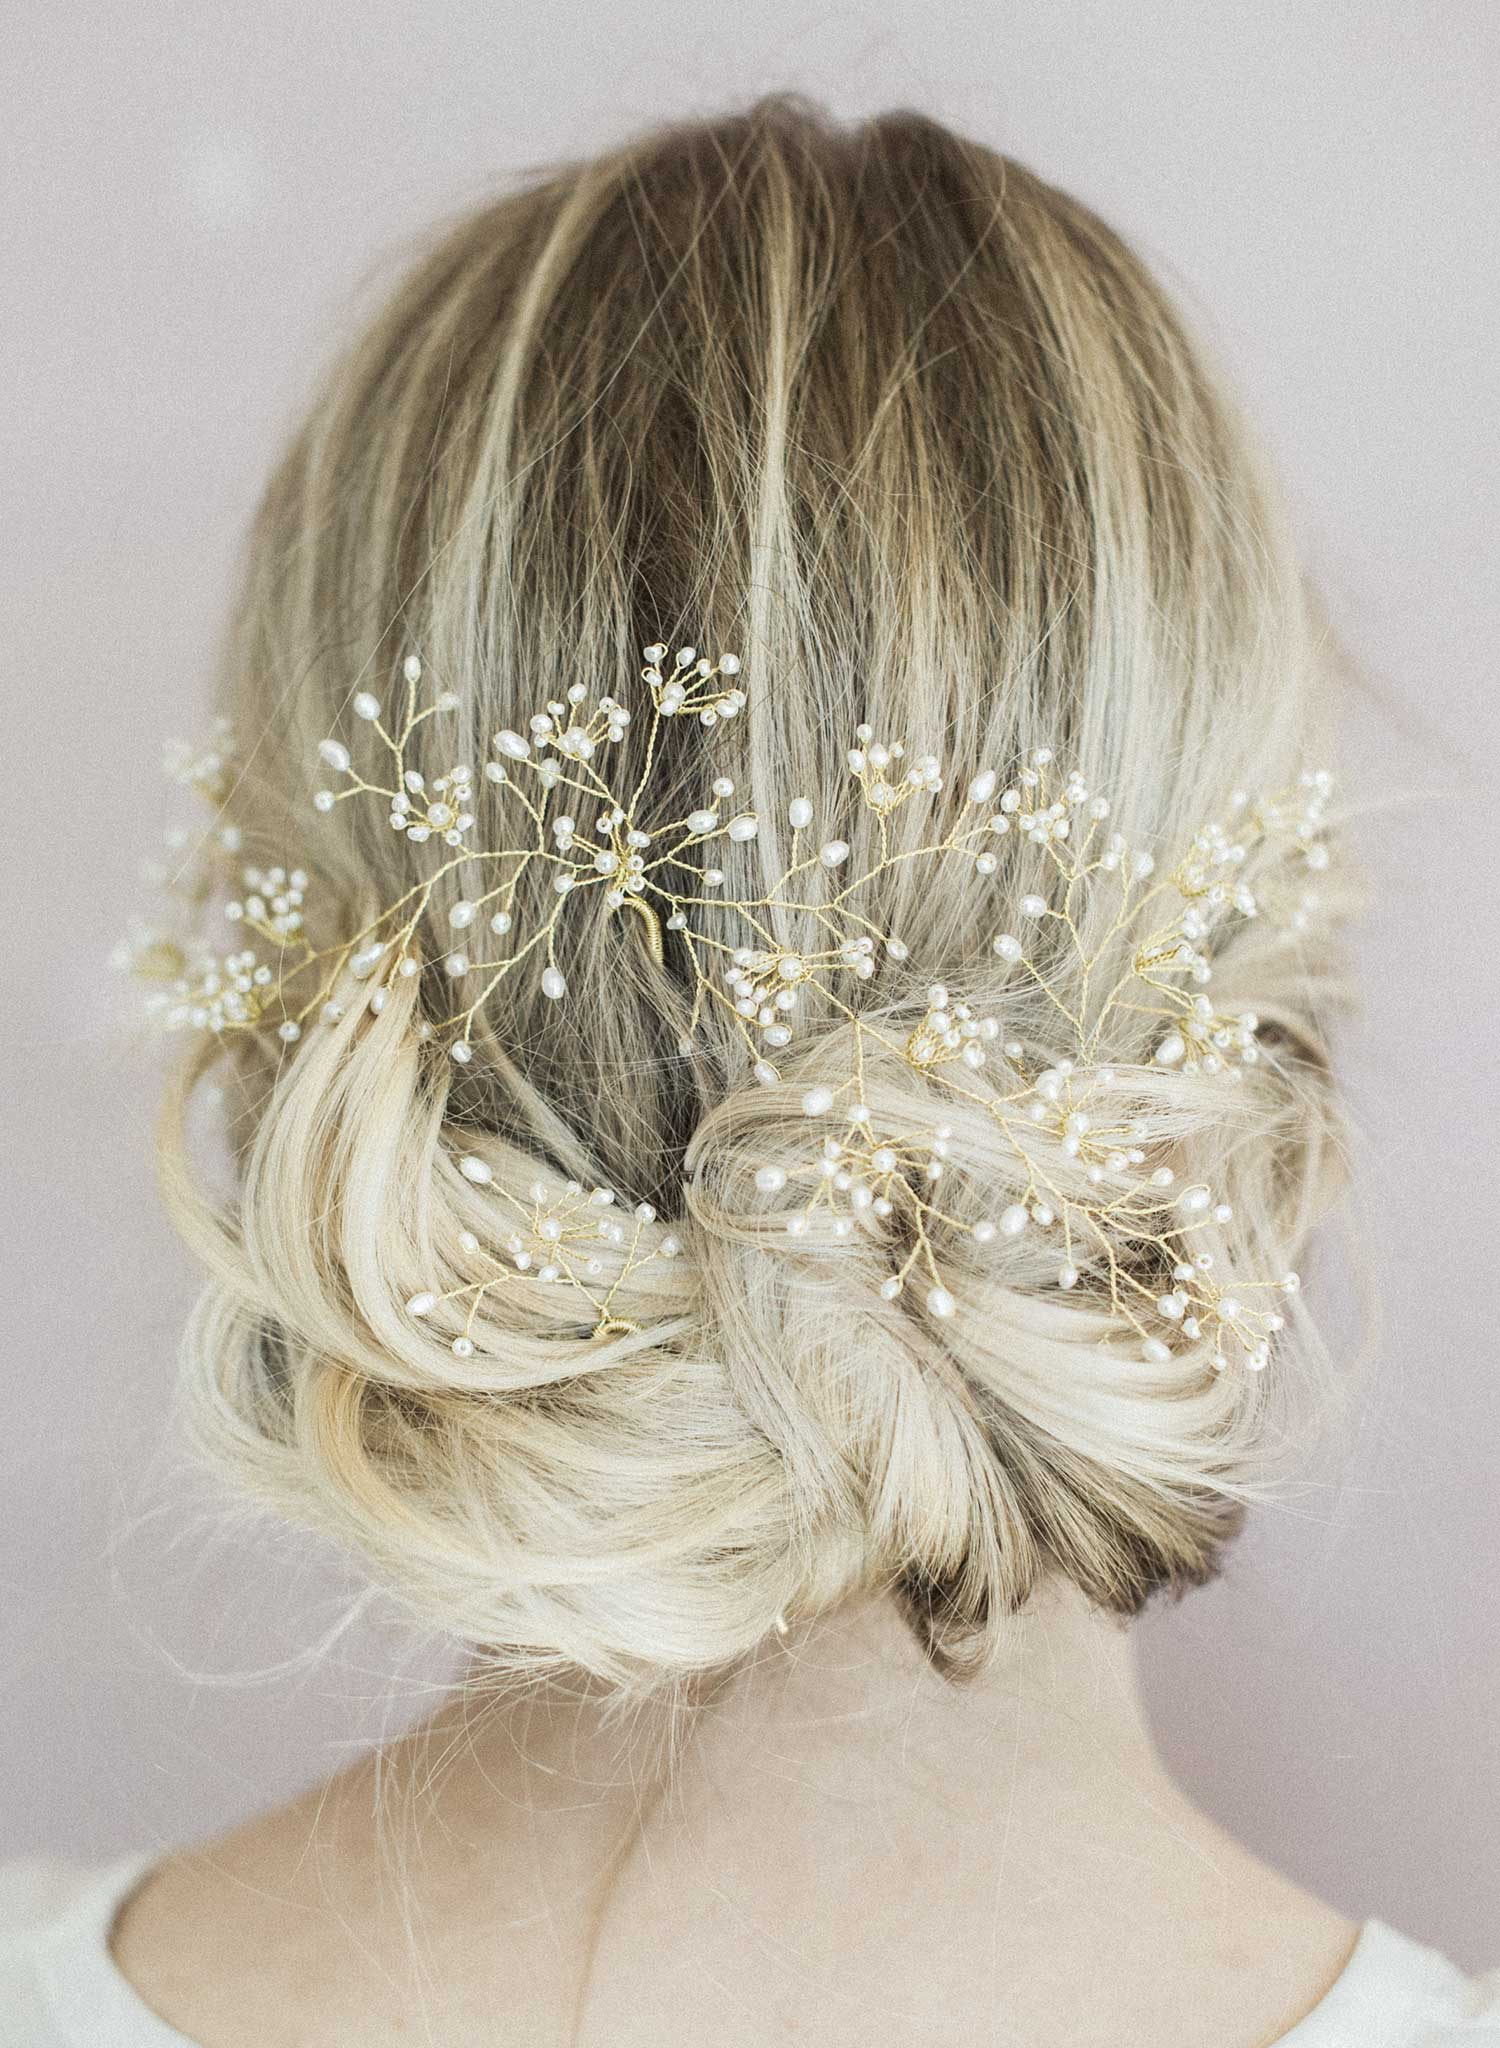 Breathless large hair pin - Style #833